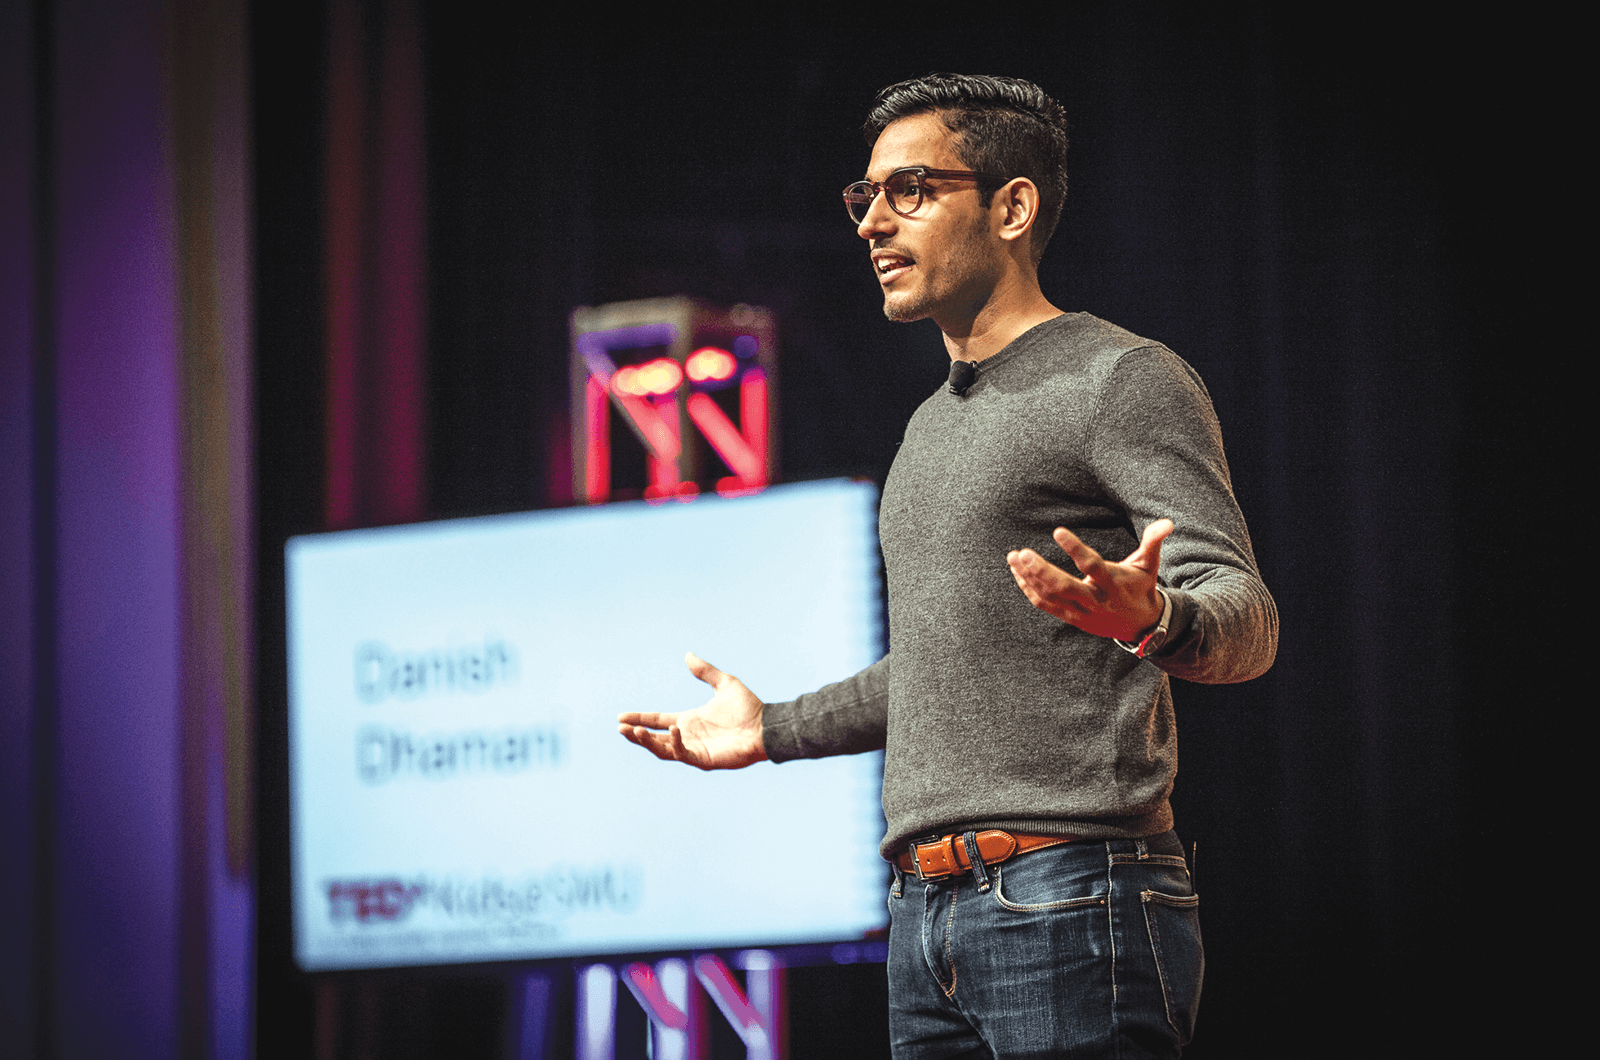 Danish Dhamani speaks onstage at TEDx